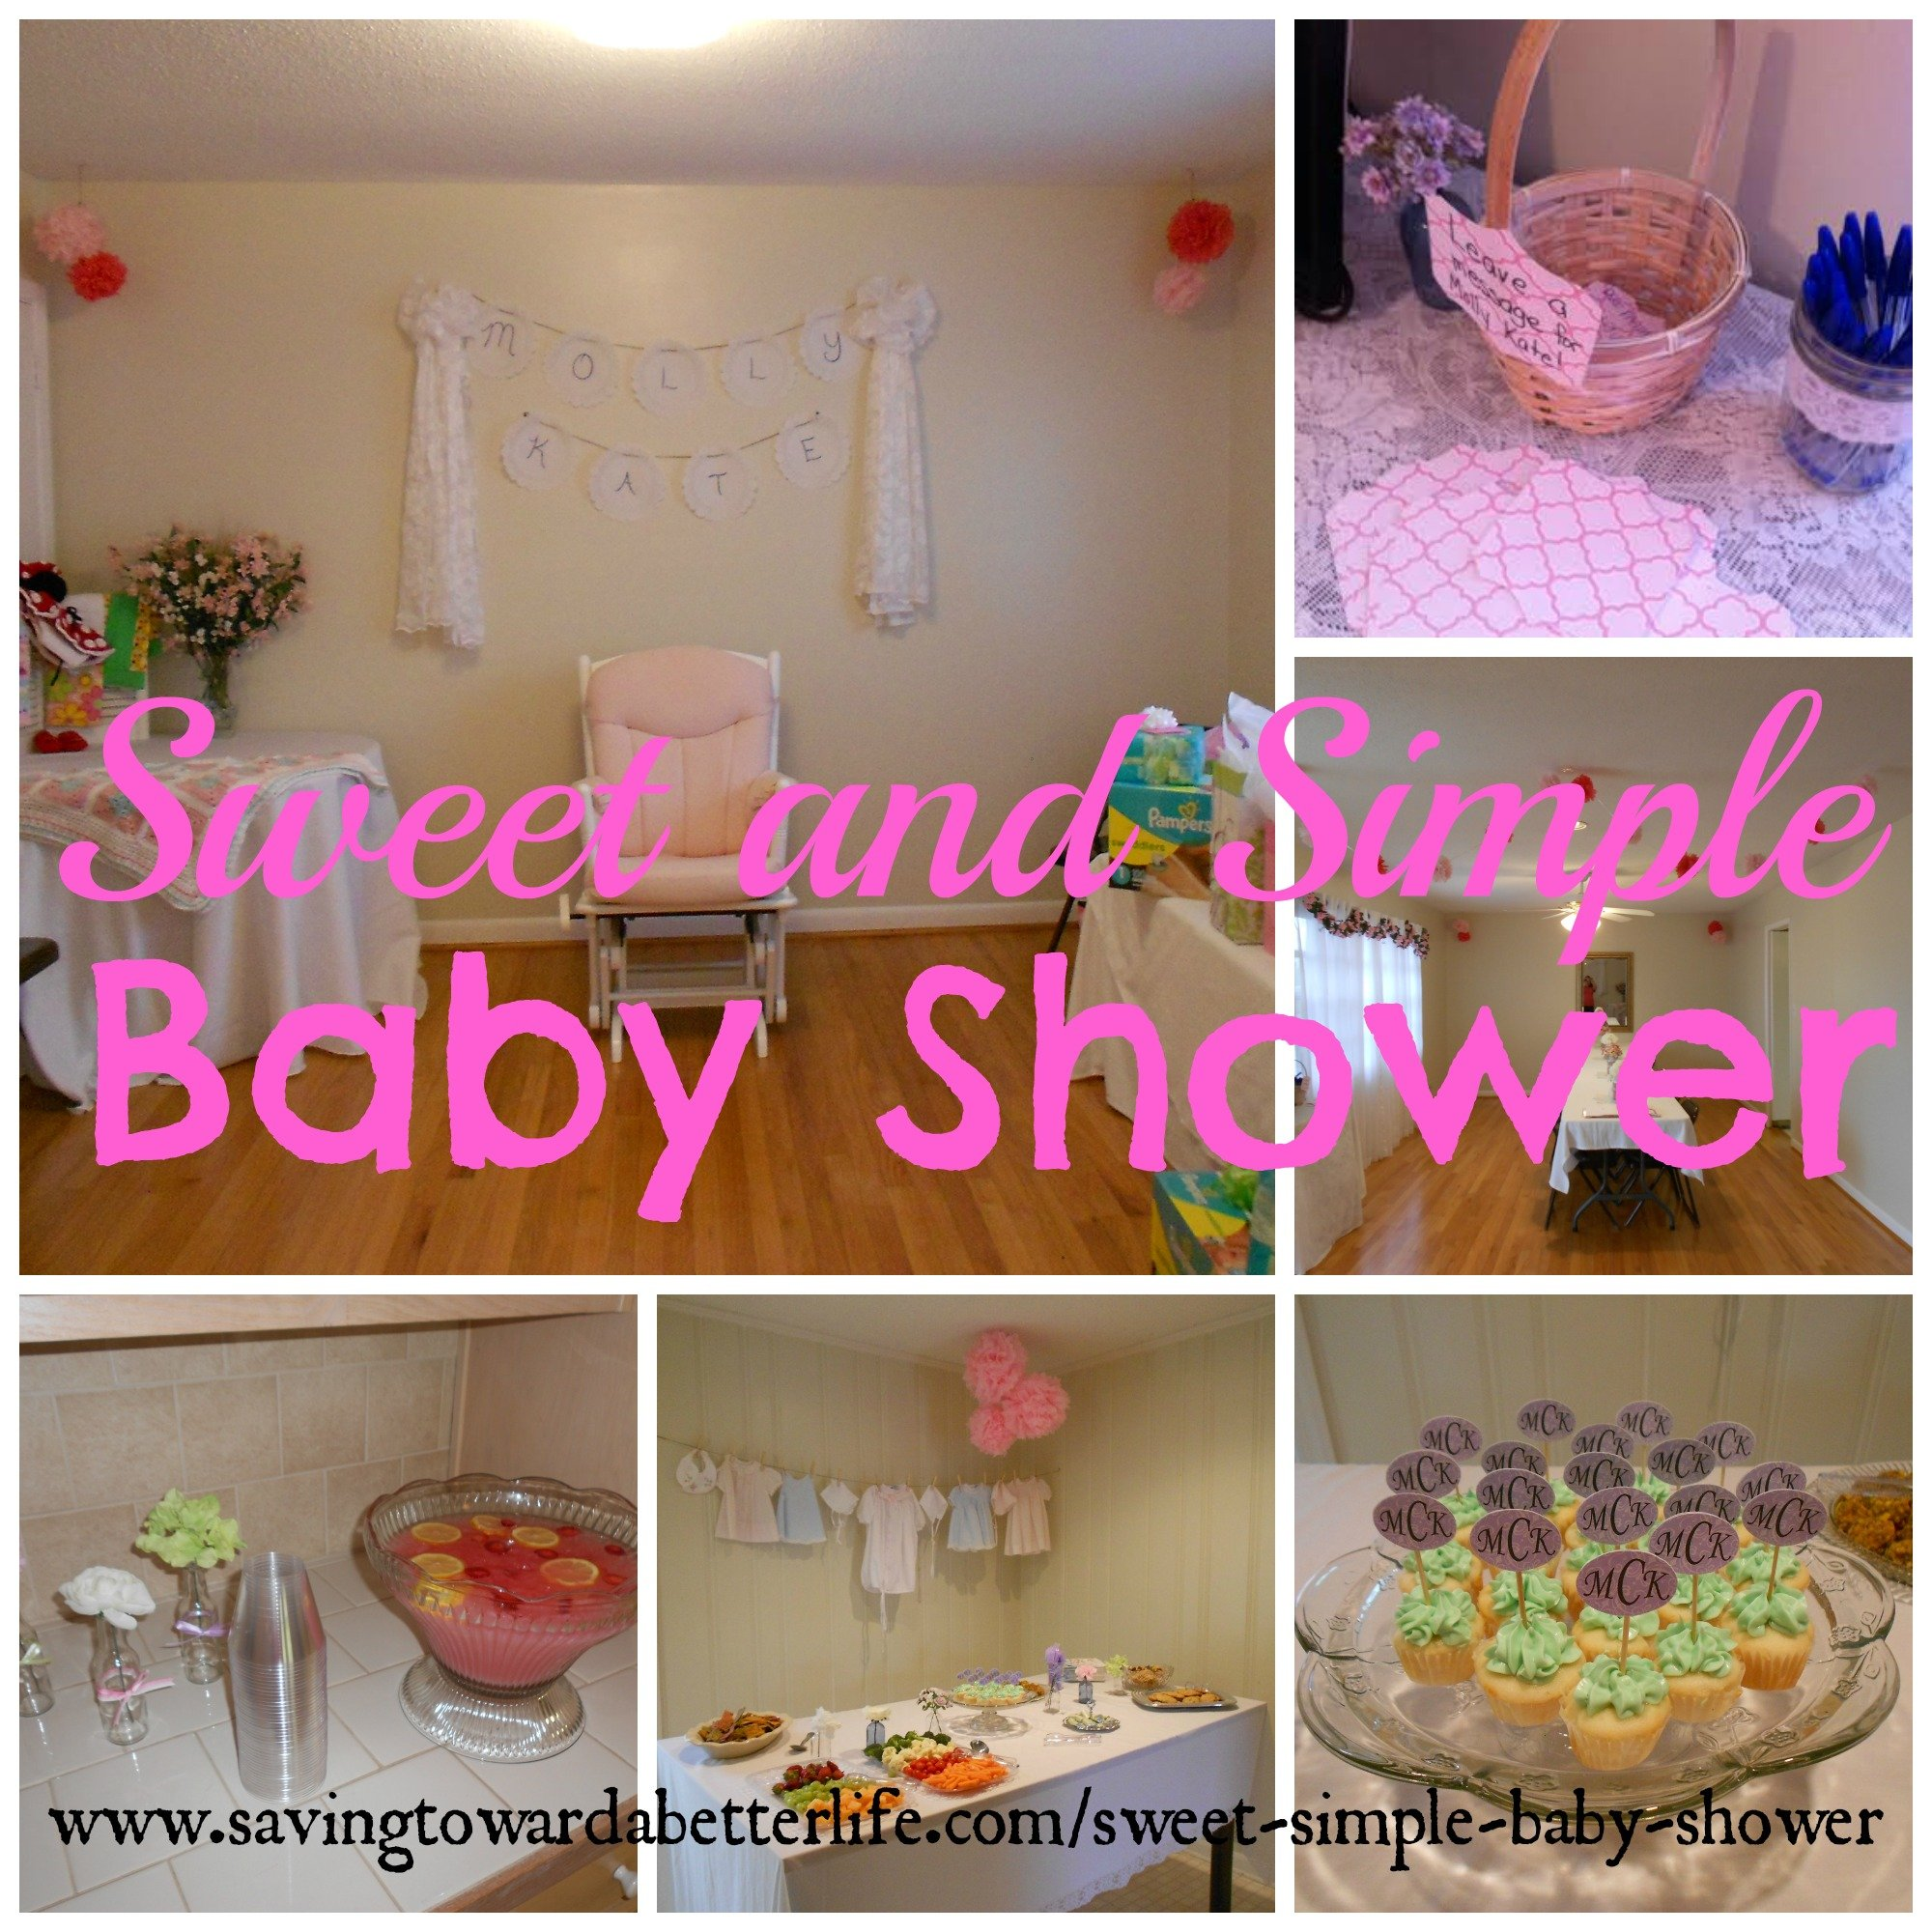 sweet and simple baby shower ideas saving toward a better